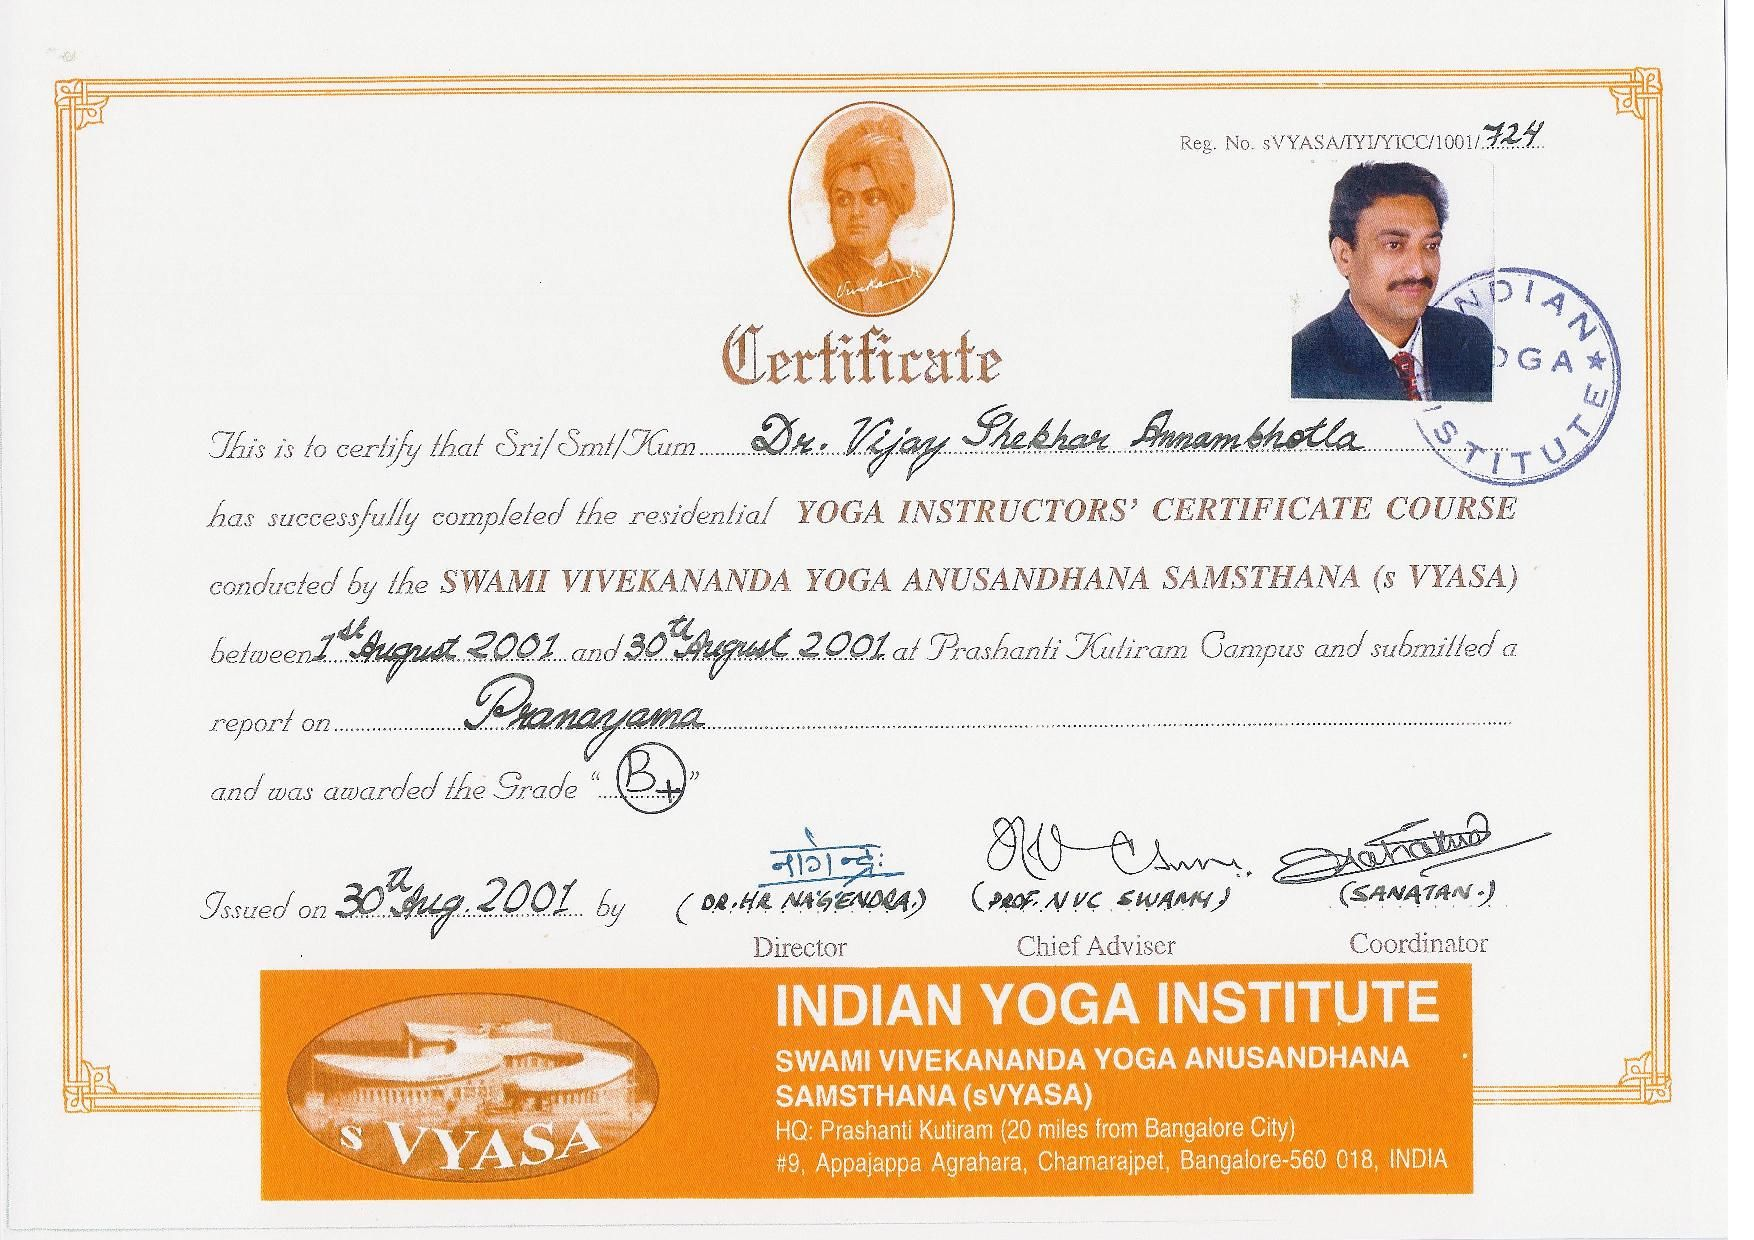 Yoga certification certificate get your free yoga tips yoga yoga certification certificate get your free yoga tips yadclub Image collections